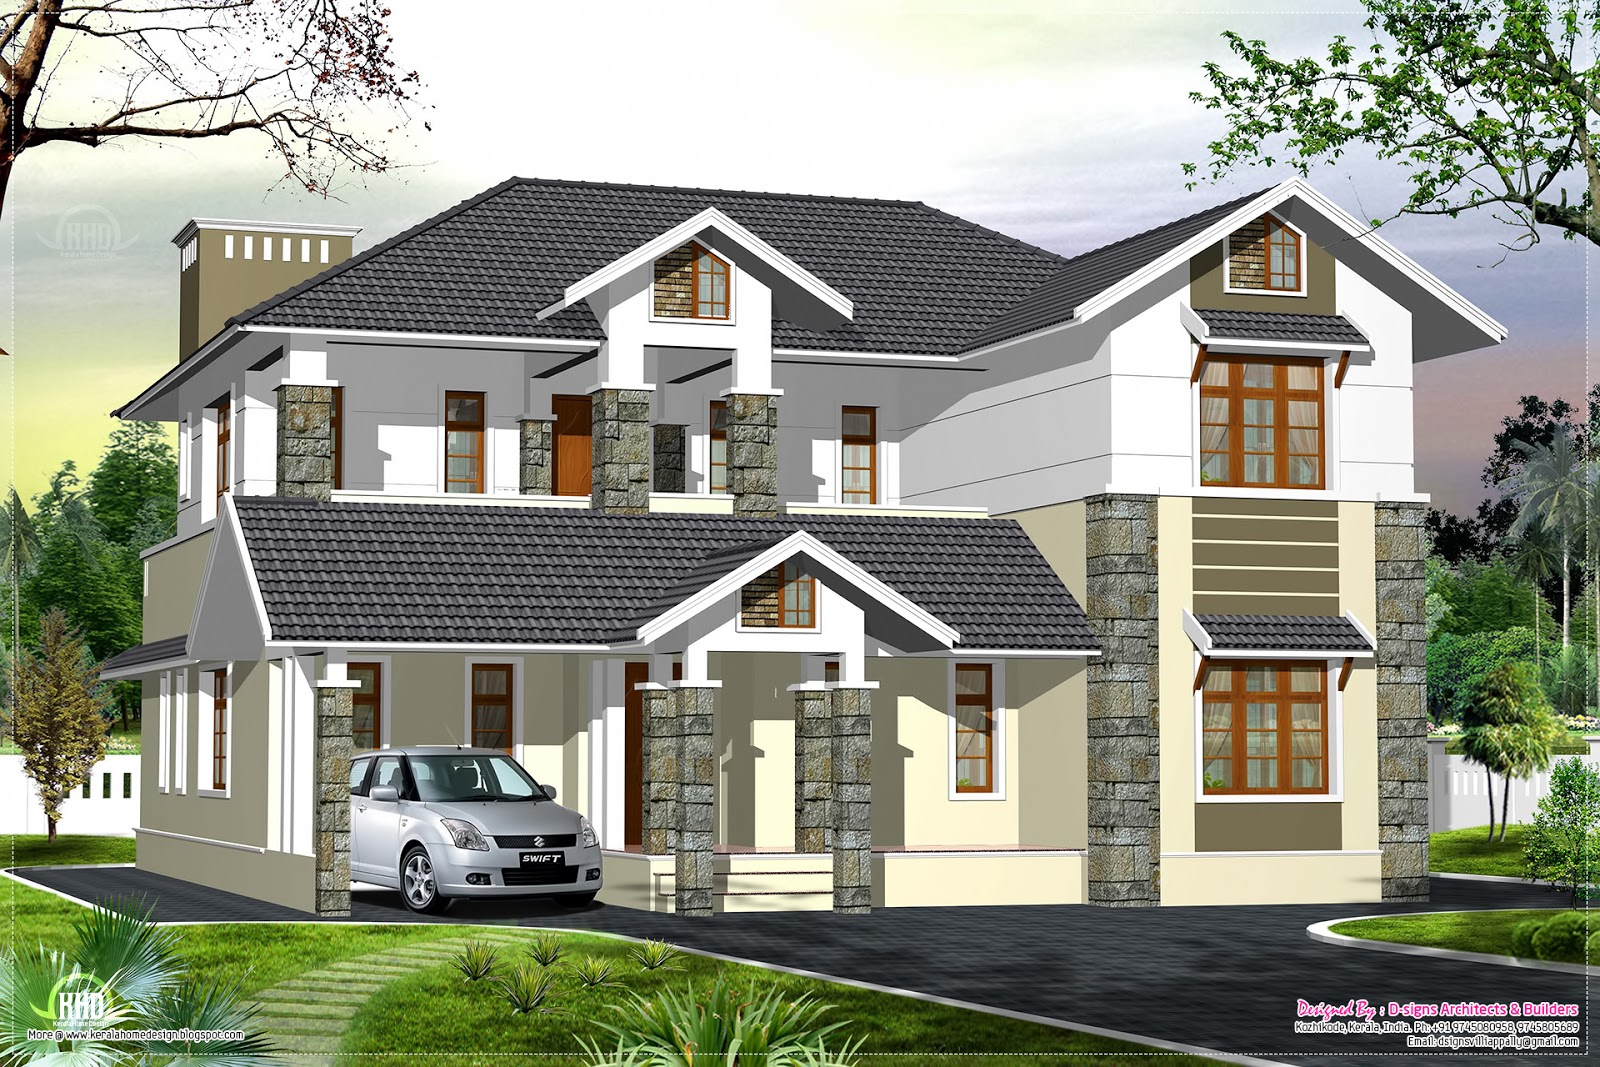 Luxury kerala style villa exterior design house design plans for Luxury house exterior designs